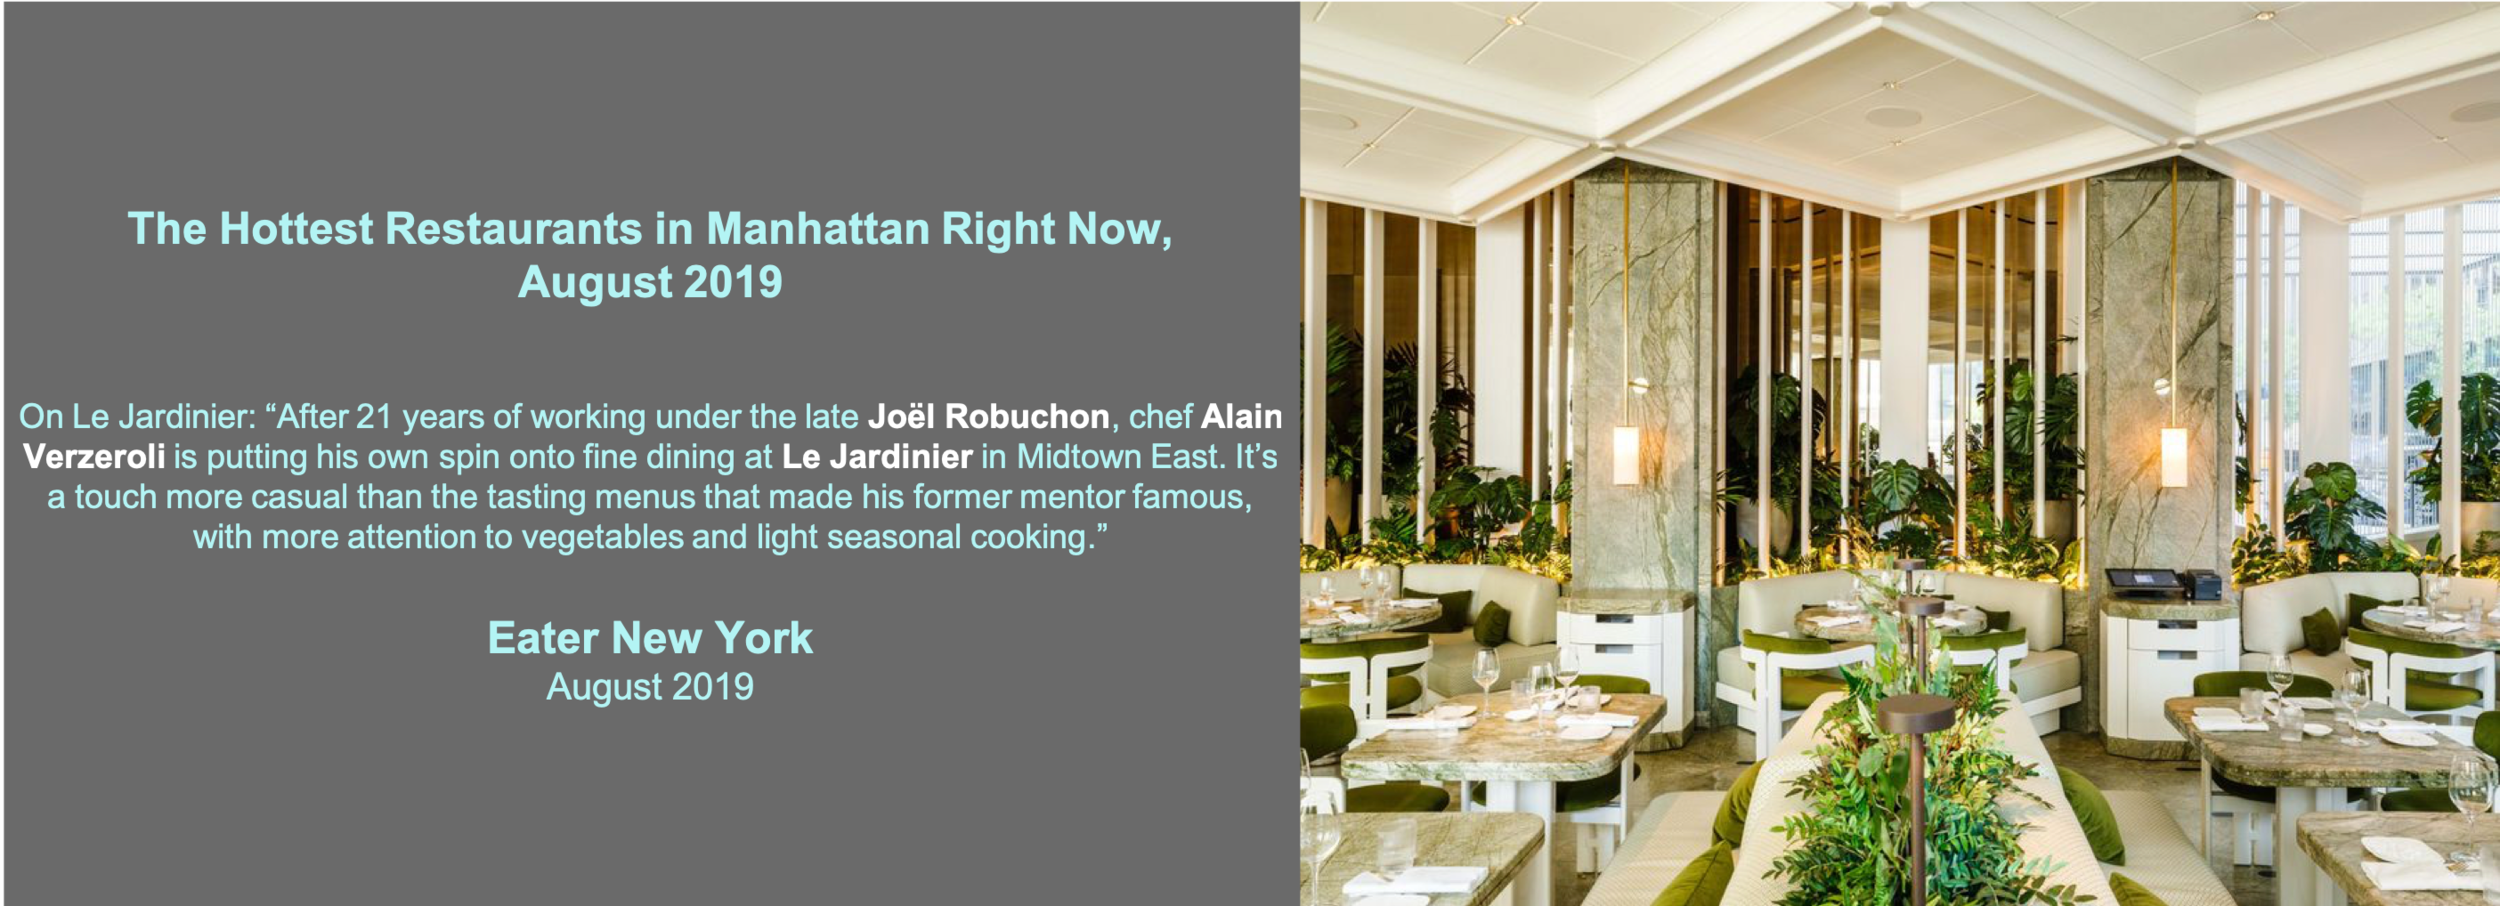 Eater NY August 1 2019 Le Jardinier.png